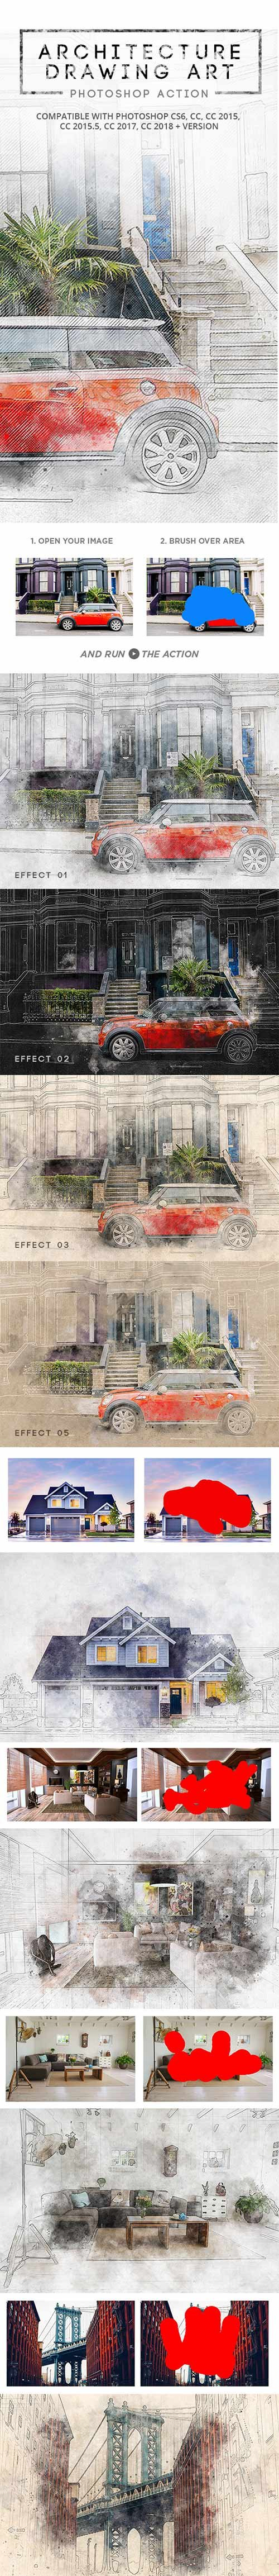 GraphicRiver - Architecture Drawing Art - Photoshop Action 22345479